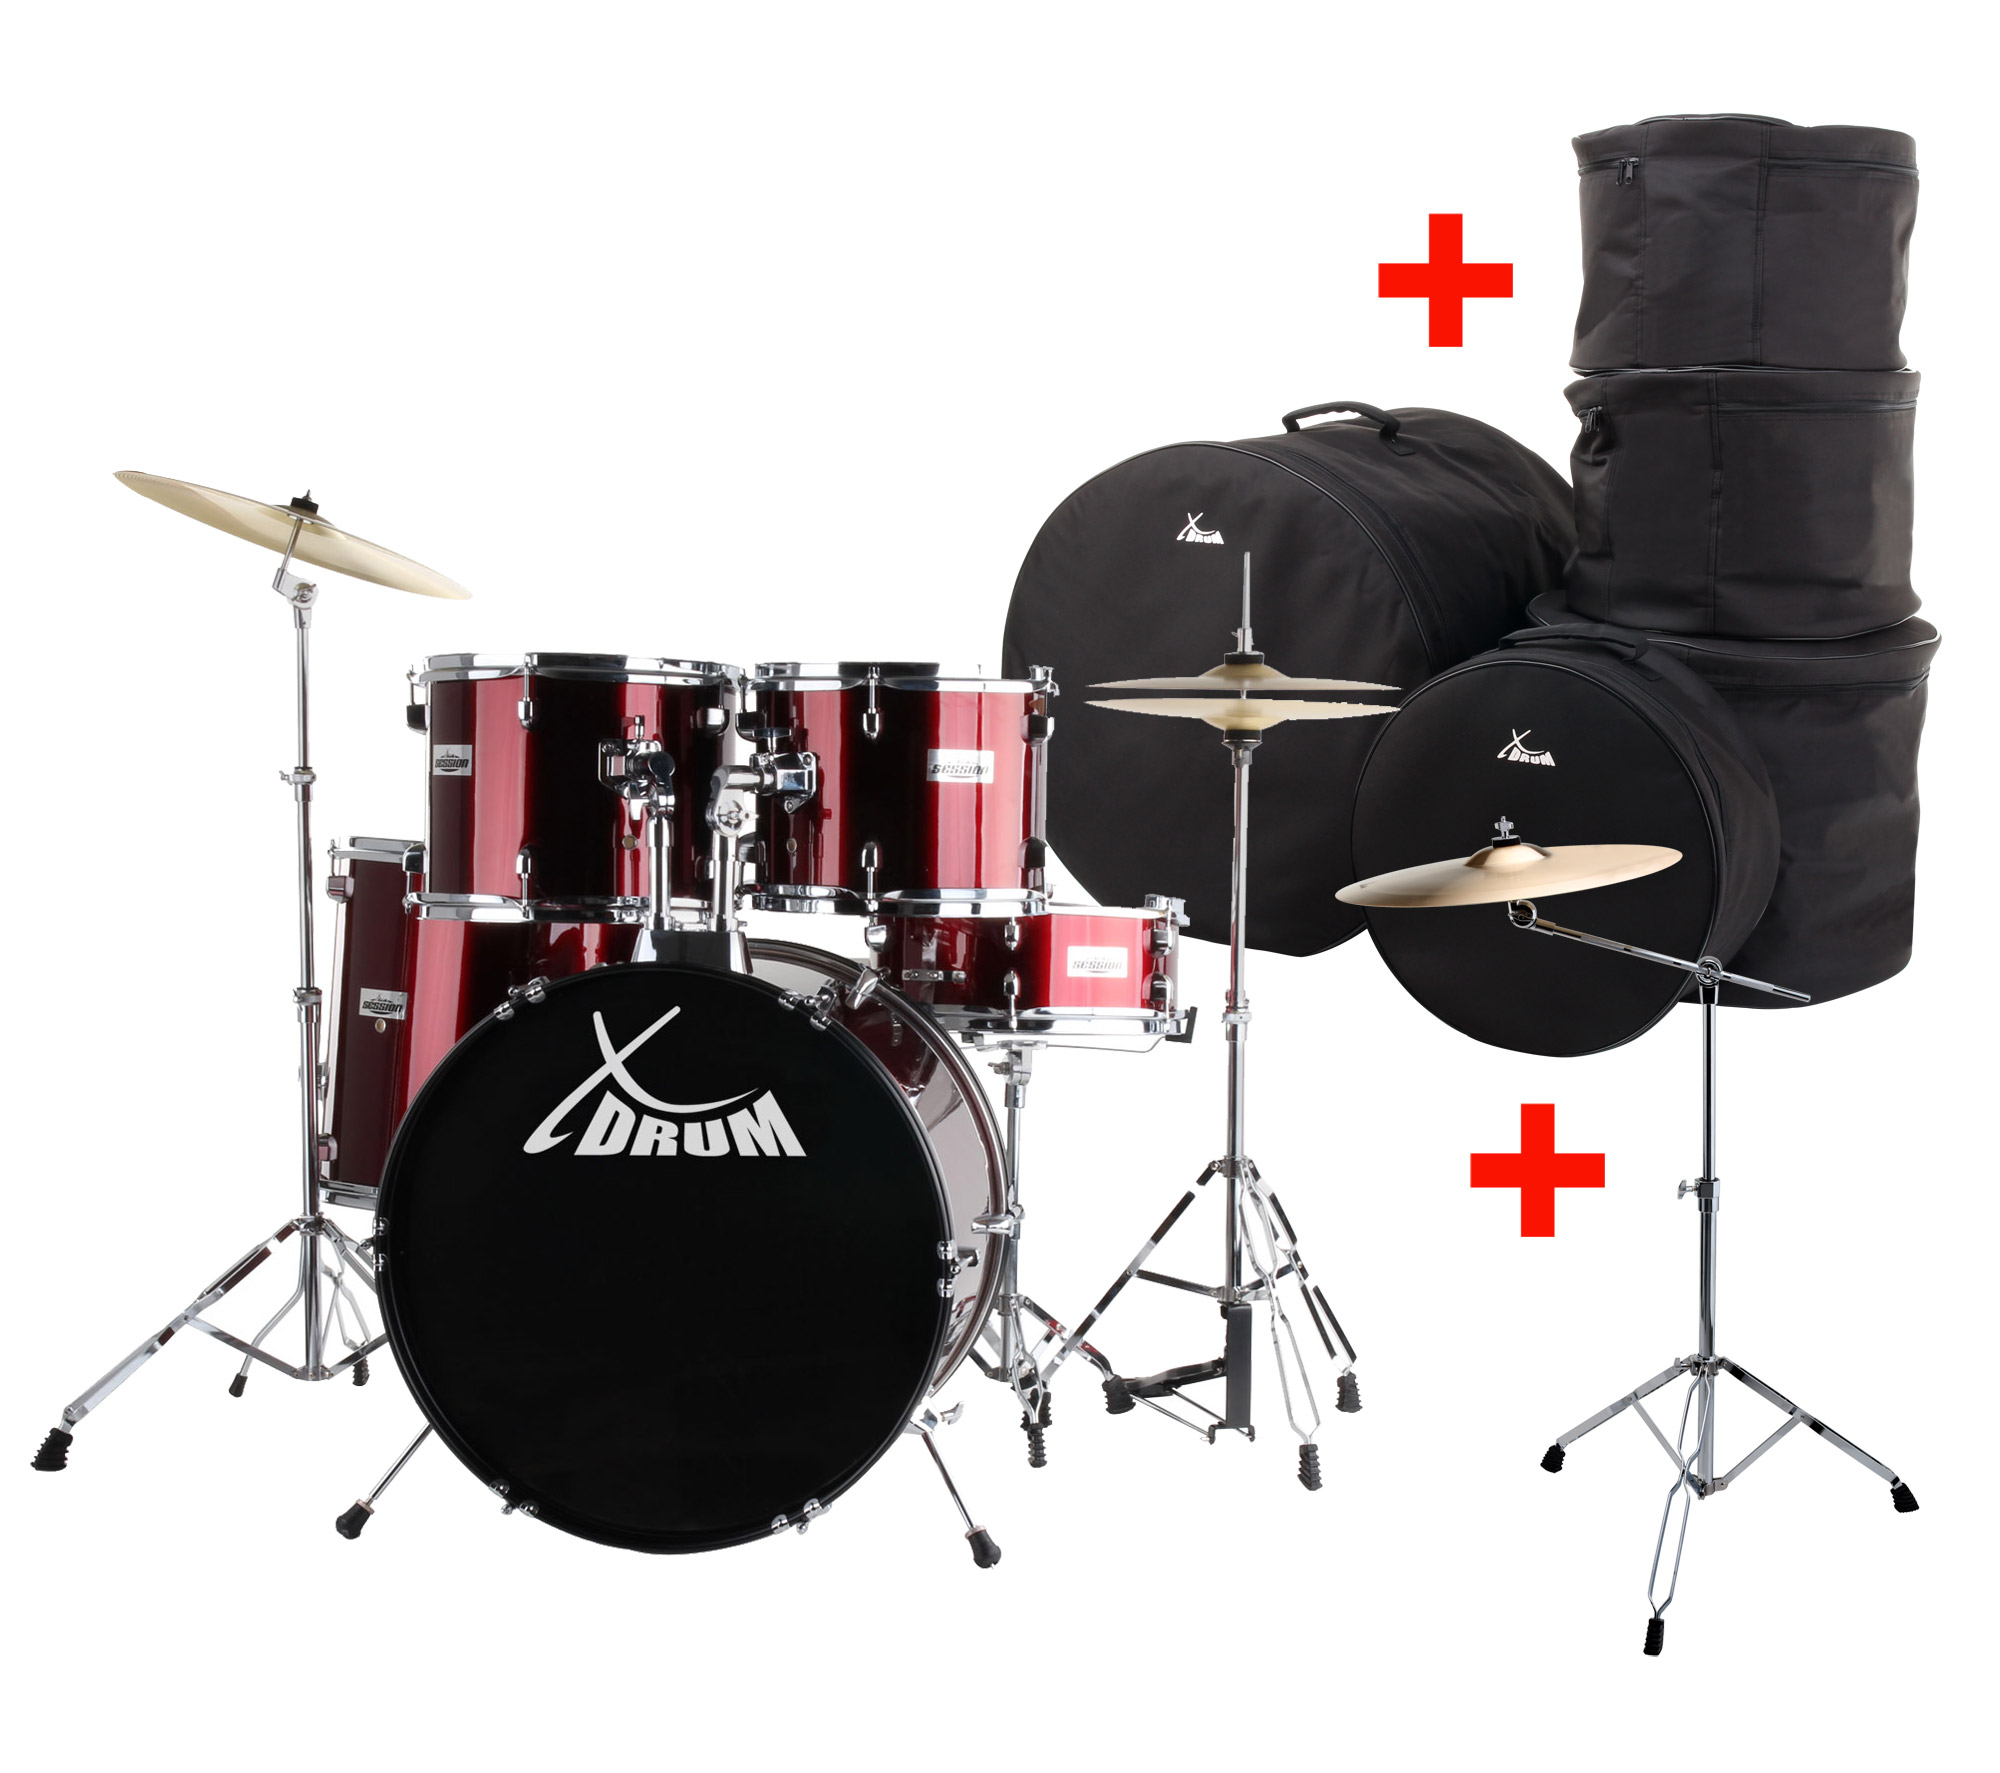 Xdrum Semi 20 Quot Standard Drumset Red Xl Set Incl Boom